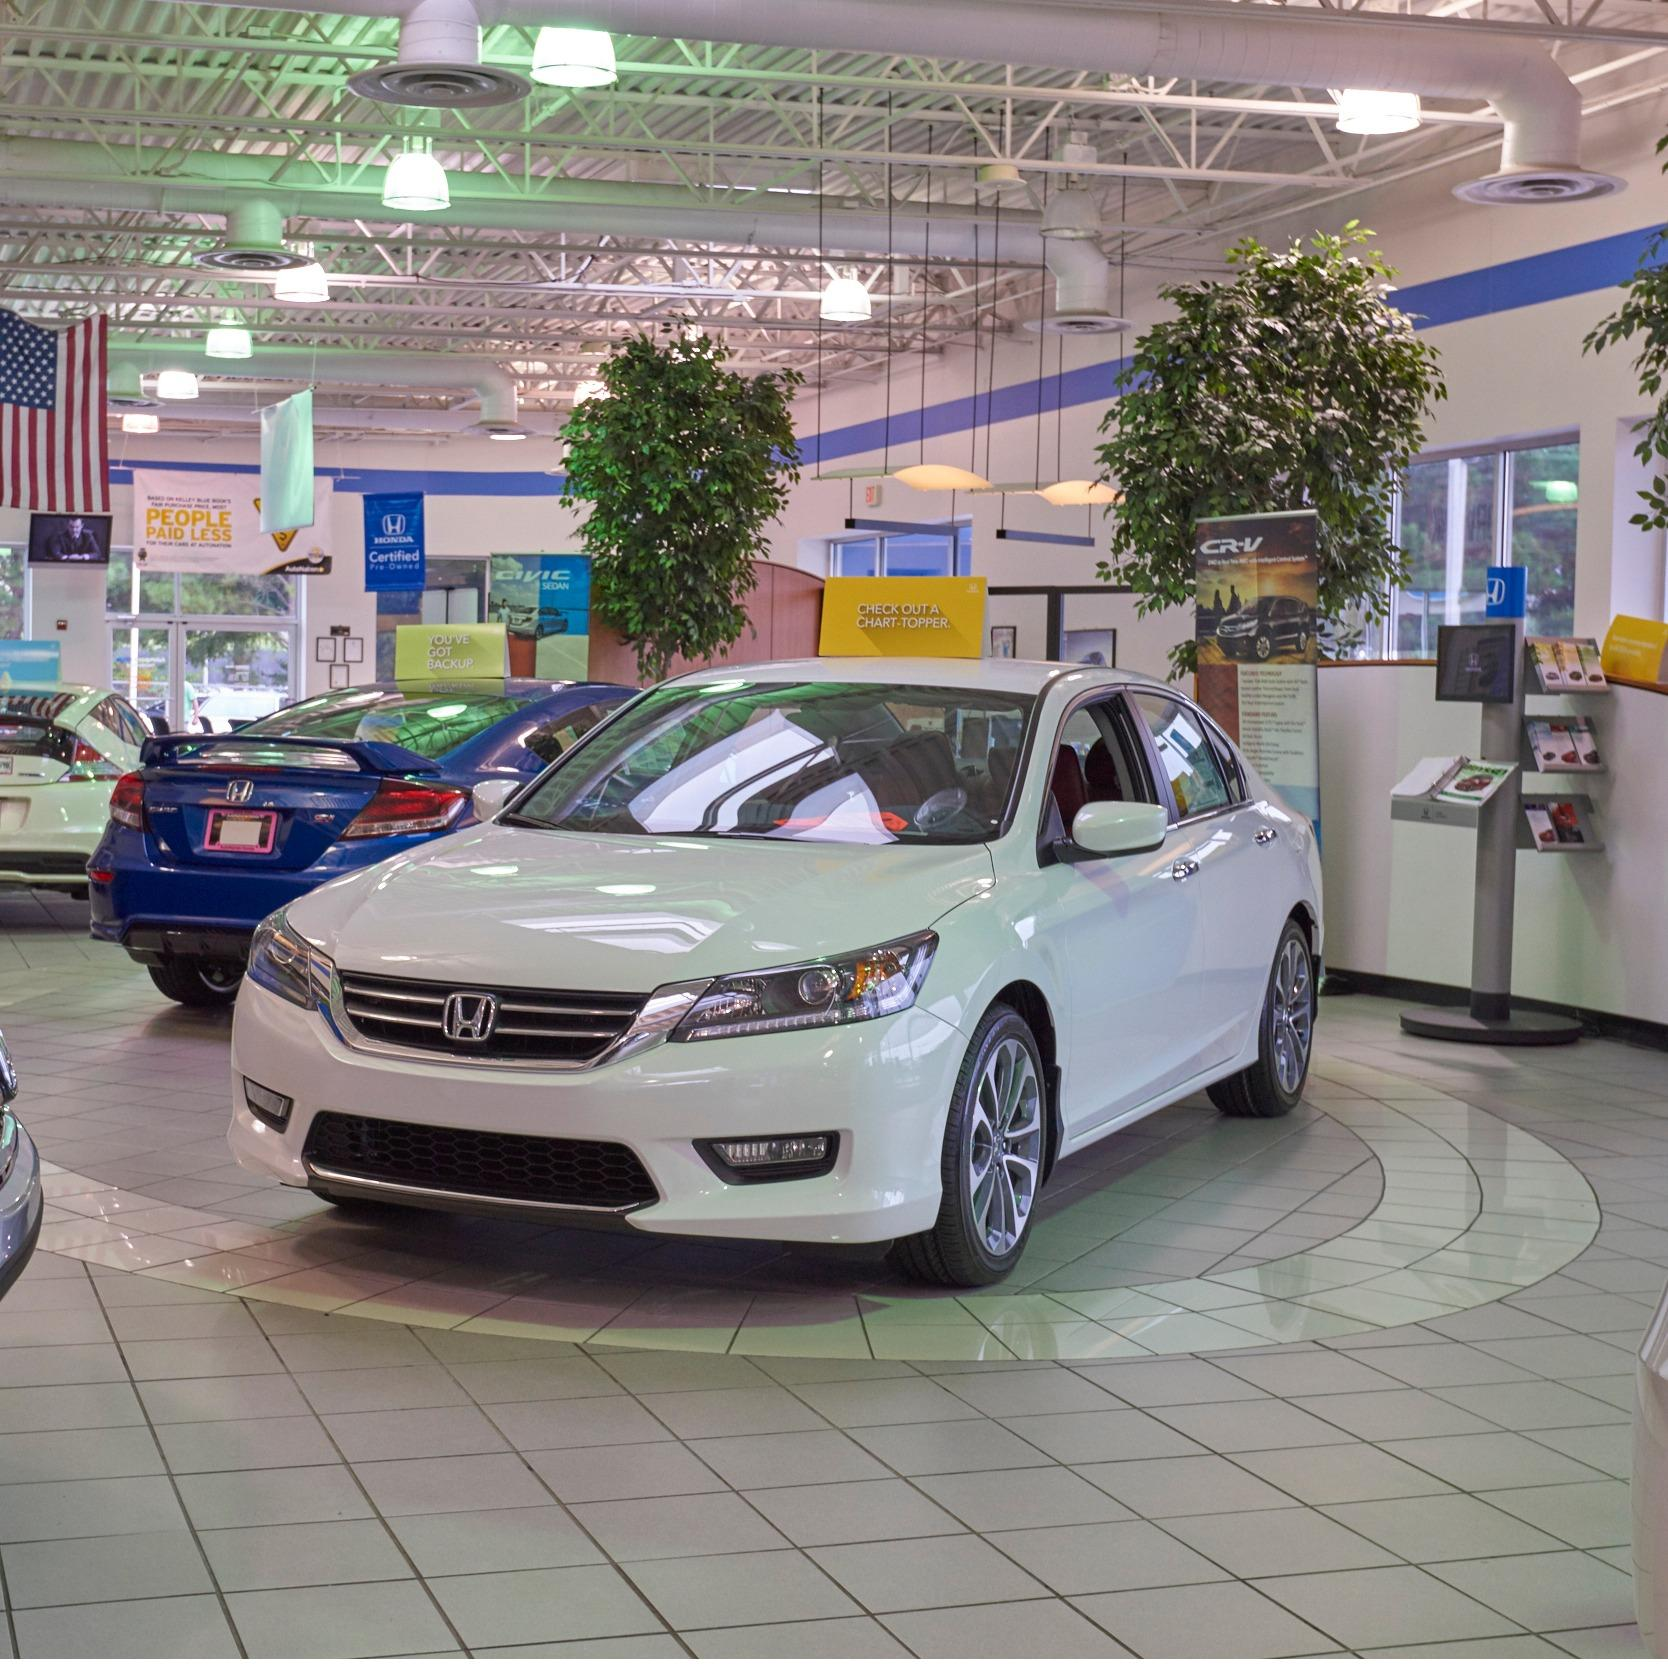 Autonation Toyota Thornton Rd >> John Bleakley Ford at 870 Thornton Road, Lithia Springs, GA on Fave